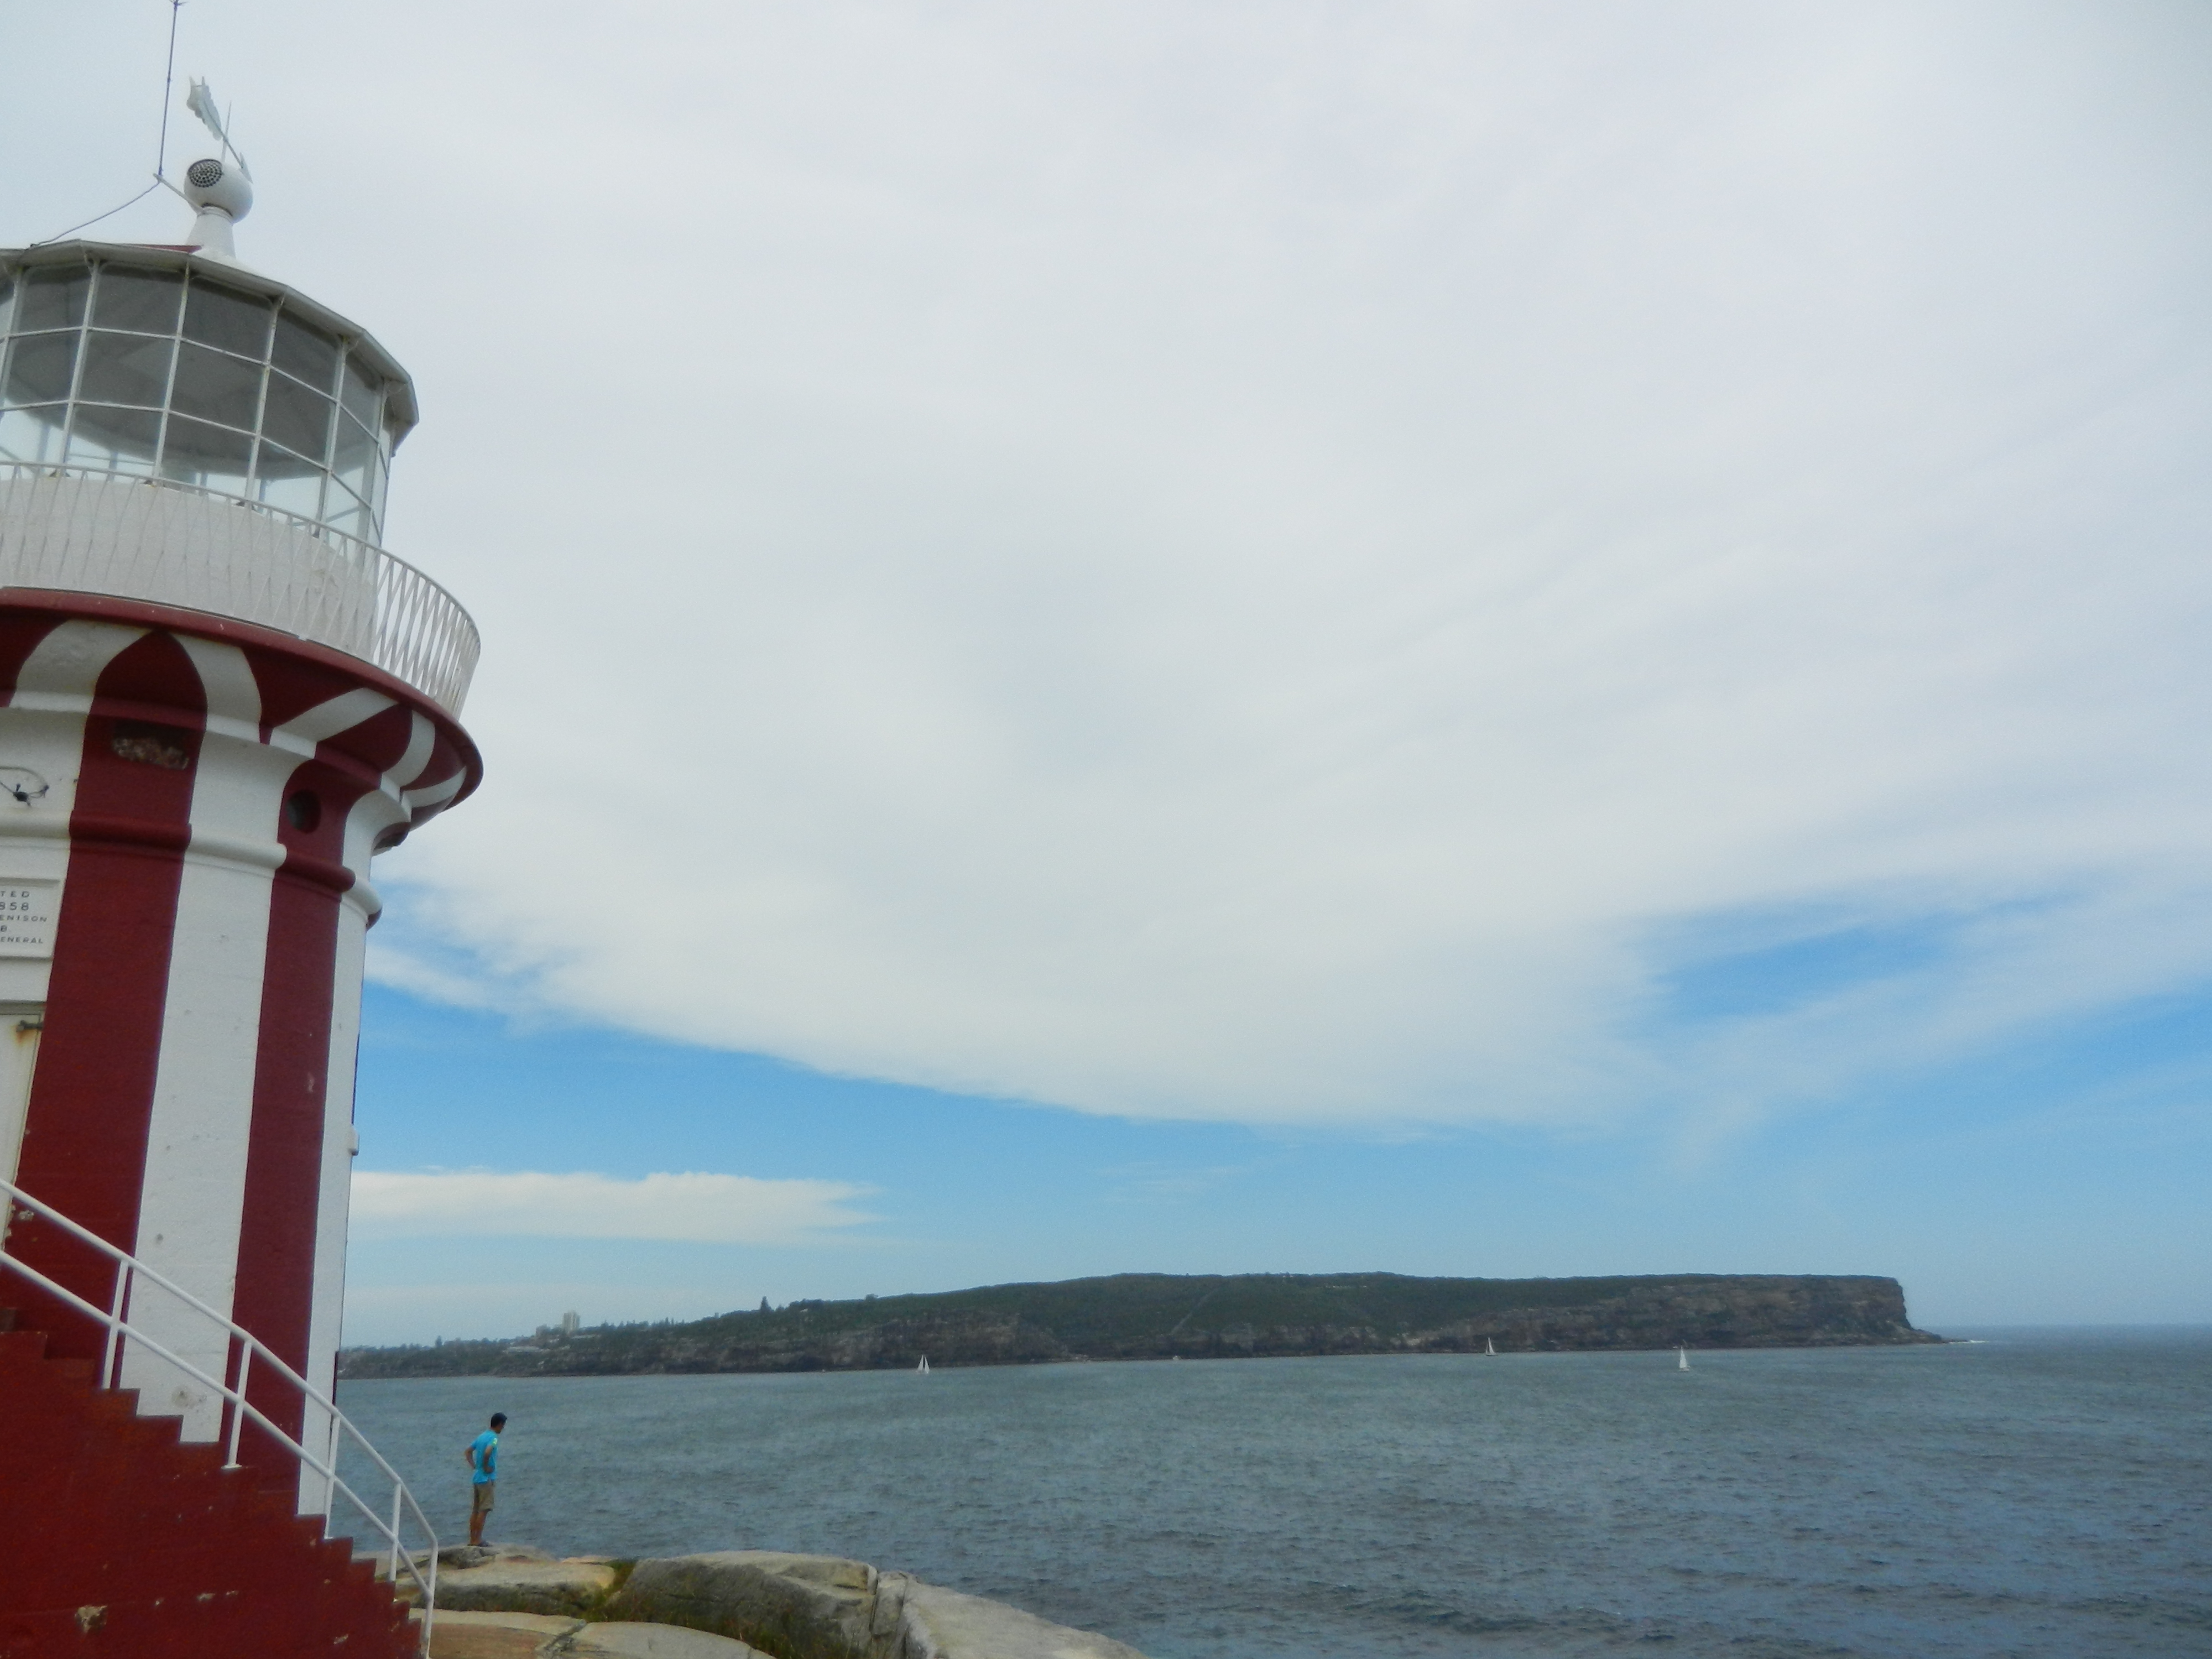 Red and white lighthouse on the left, open water on the right with an island in the background.